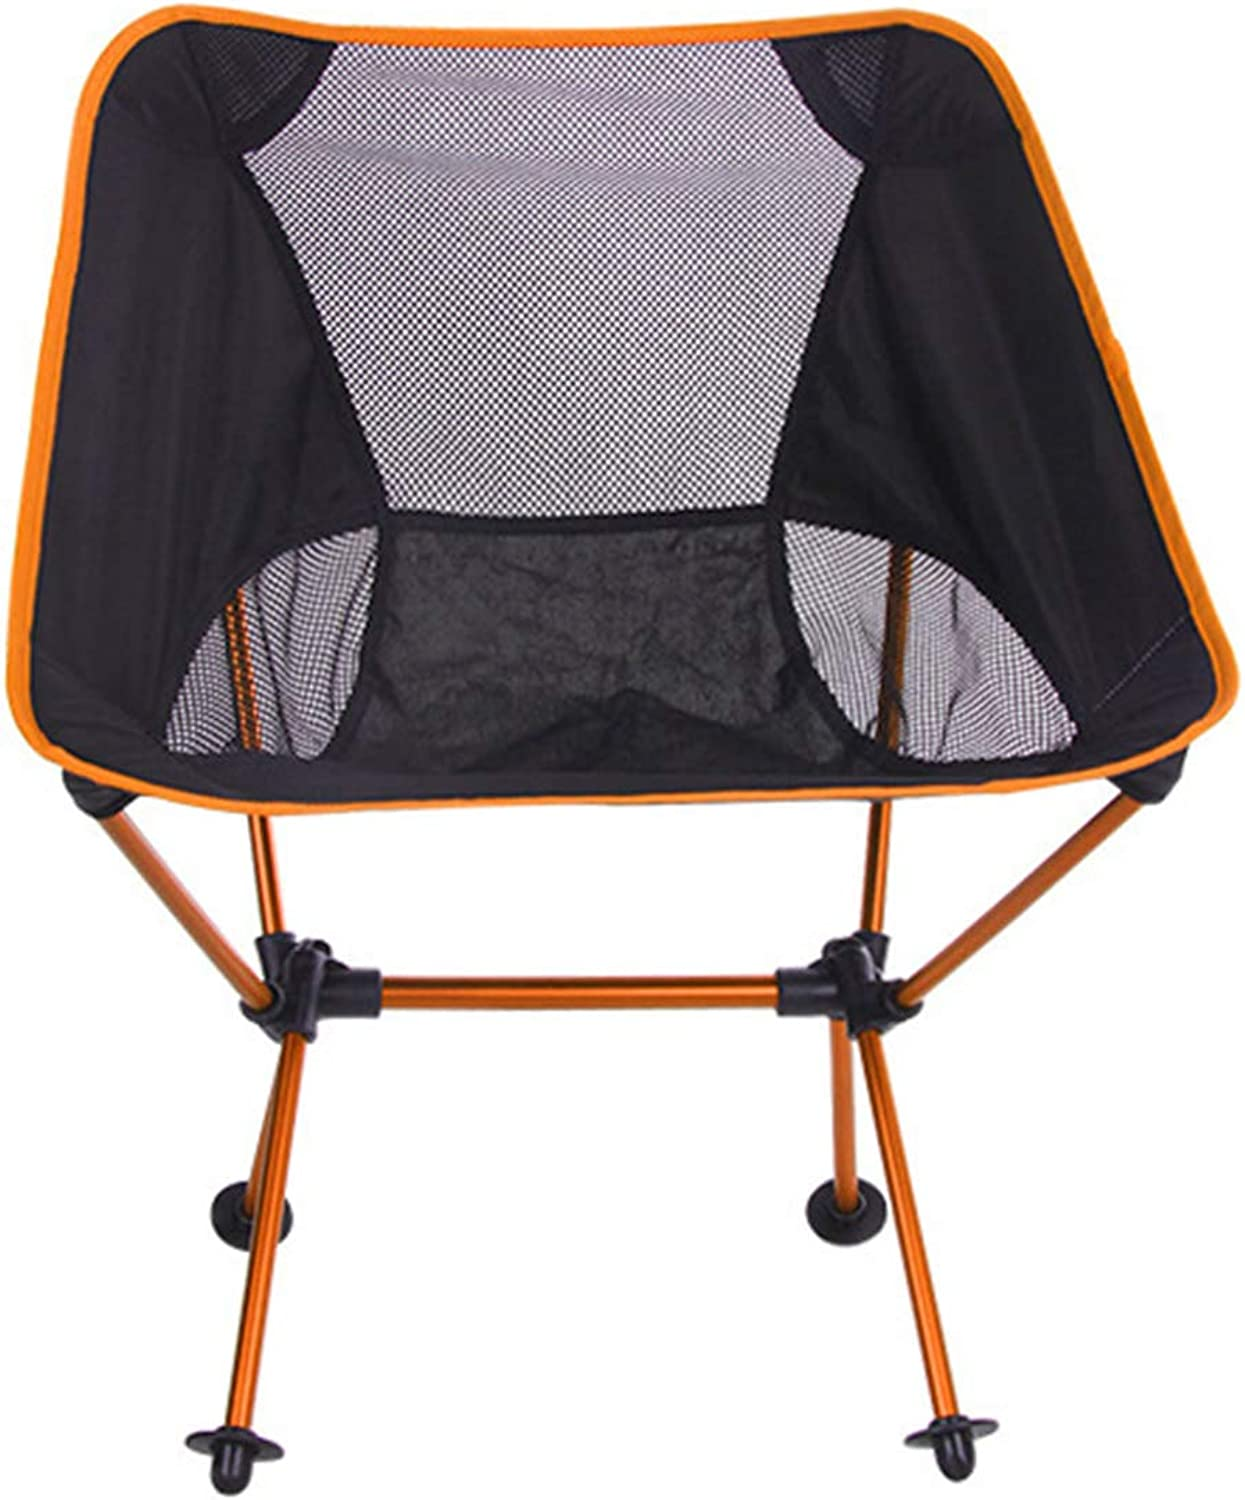 New Outdoor Tool Outdoor Portable Folding Camping Chair Light Fishing Beach Chair Aviation Aluminum Alloy Backrest Recliner Use for Camping Outdoor Travel Activities (color   orange)